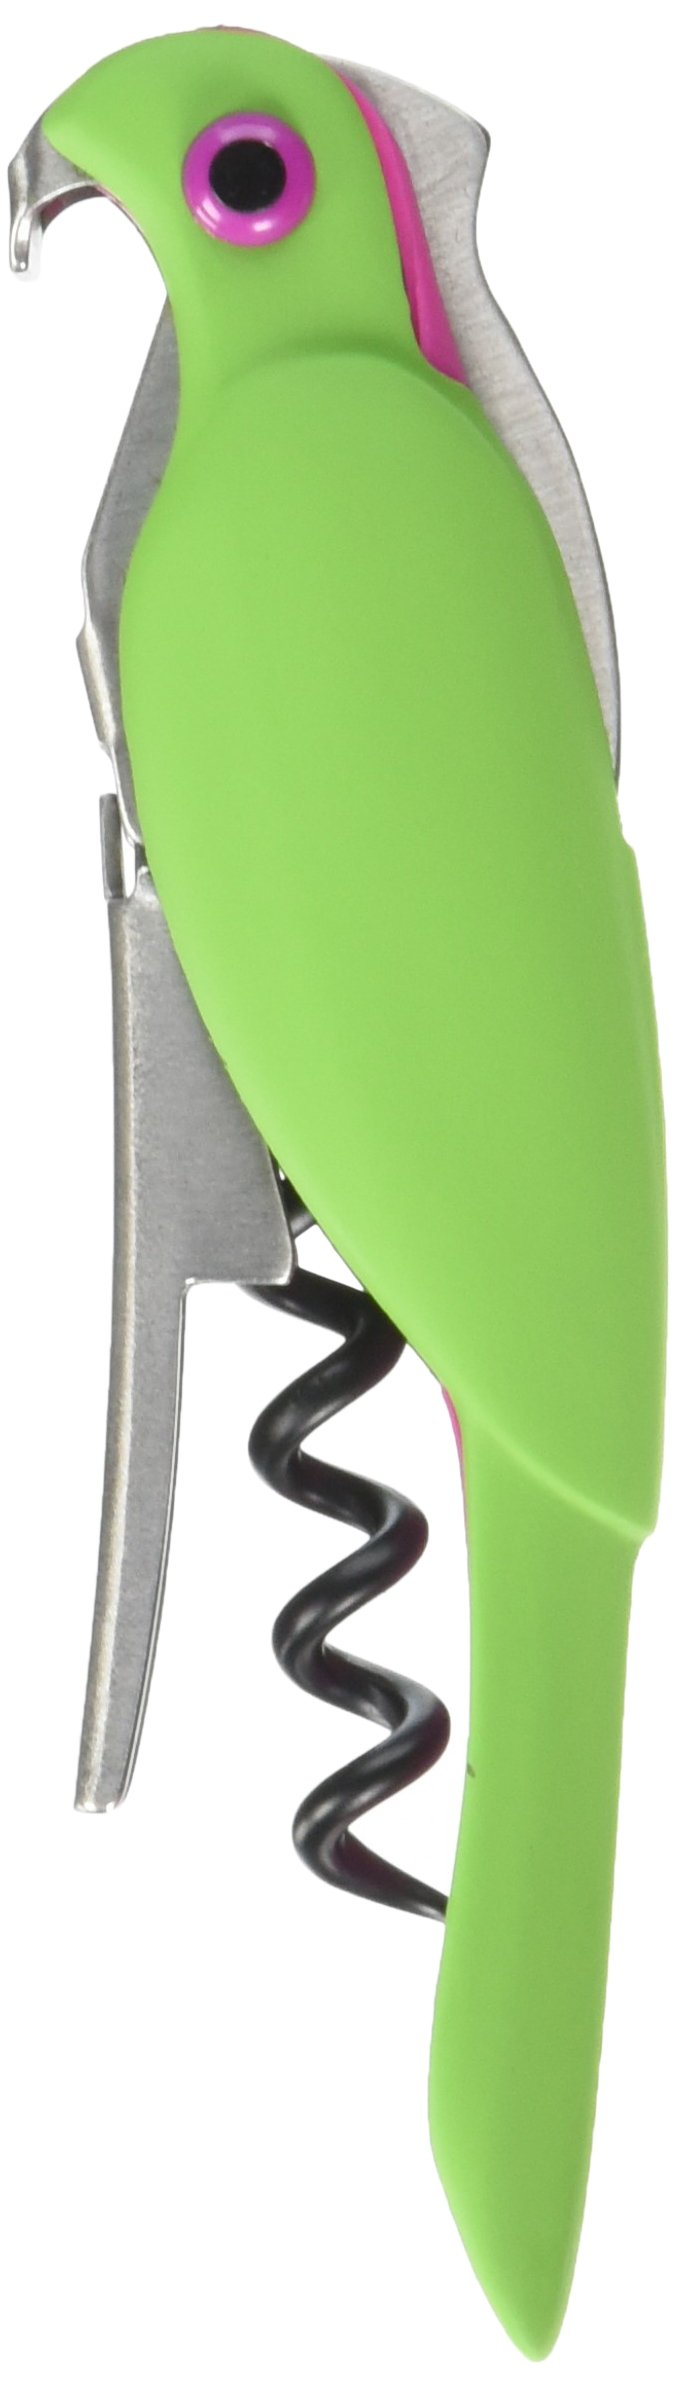 TrueZoo Corkatoo Double Hinged Corkscrews in Assorted Colors by